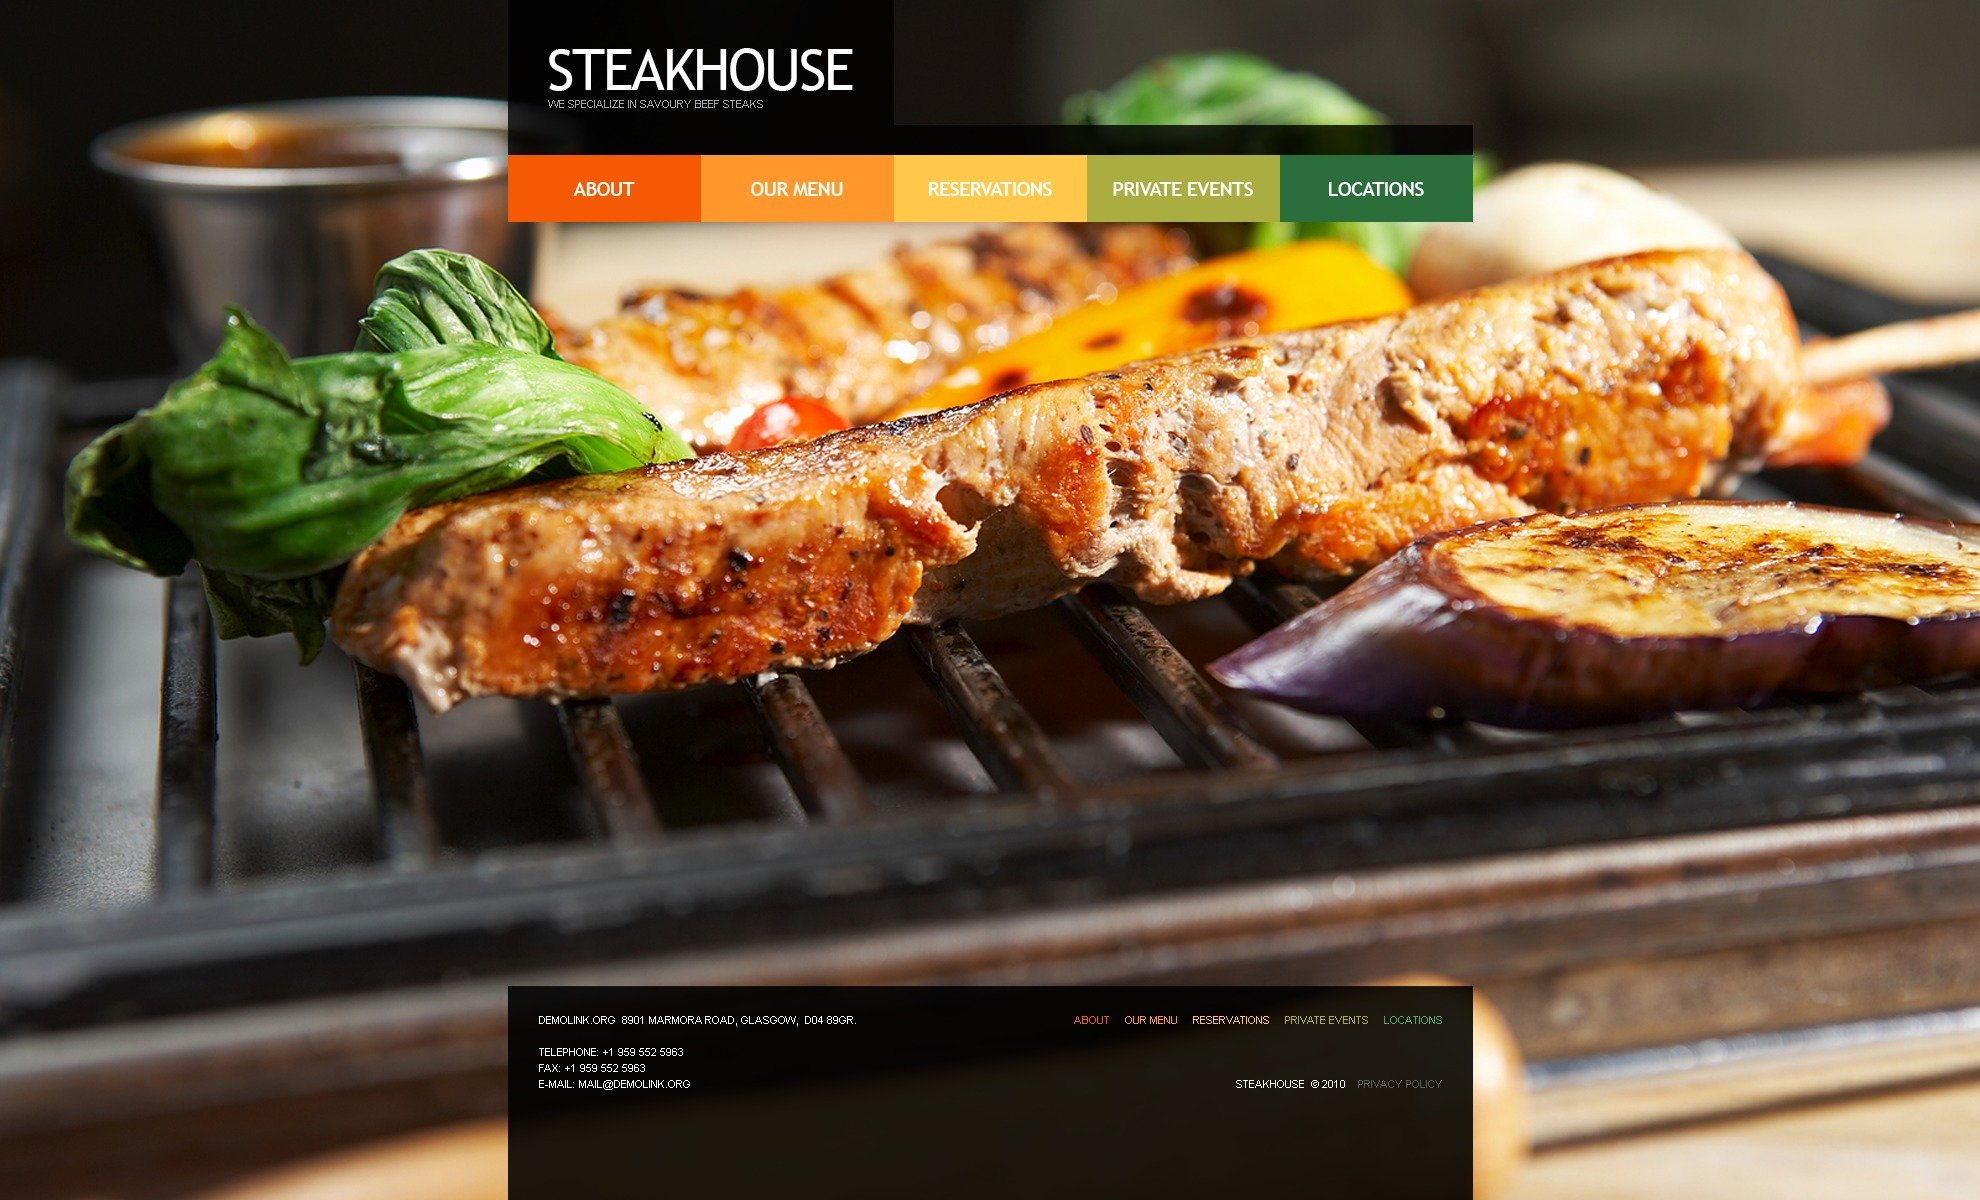 The Steakhouse Restaurant PSD Design 54356, one of the best PSD templates of its kind (cafe and restaurant, wide, jquery), also known as steakhouse restaurant PSD template, cafe PSD template, food PSD template, eat PSD template, steak PSD template, house PSD template, meat PSD template, tasty PSD template, cook PSD template, cooking PSD template, delicious and related with steakhouse restaurant, cafe, food, eat, steak, house, meat, tasty, cook, cooking, delicious, etc.